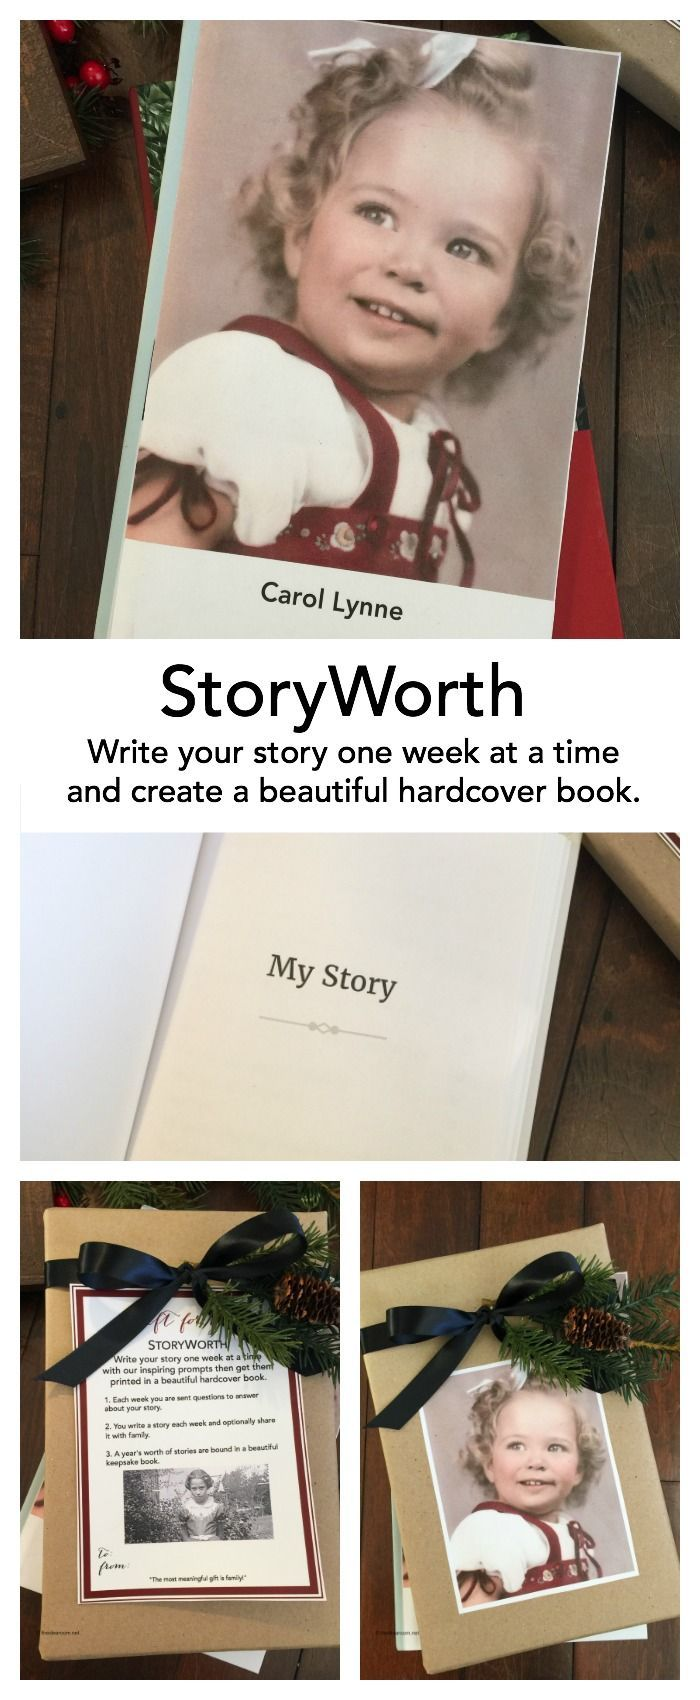 Gift Giving: Share Your Story with StoryWorth | Pinterest | Holidays ...